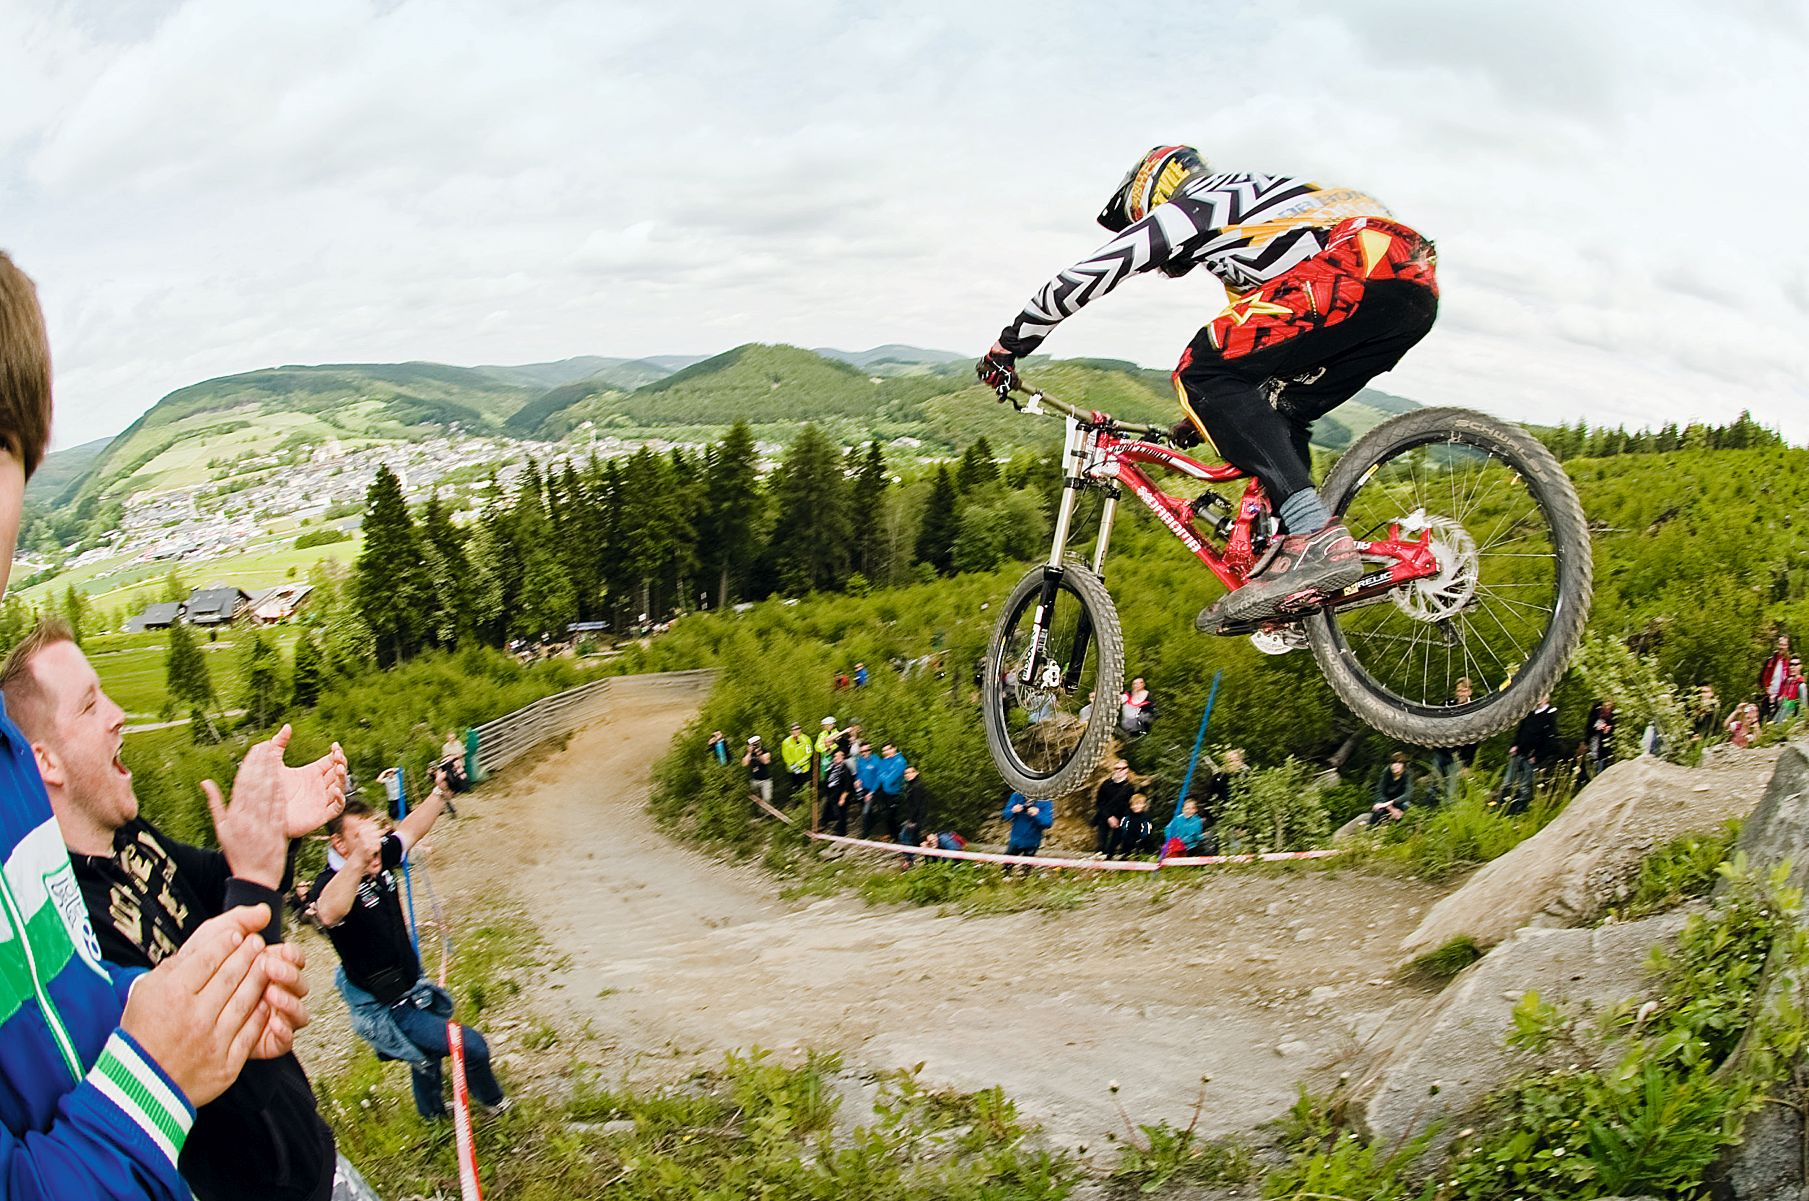 Bike Festival Willingen Tourist Information Willingen